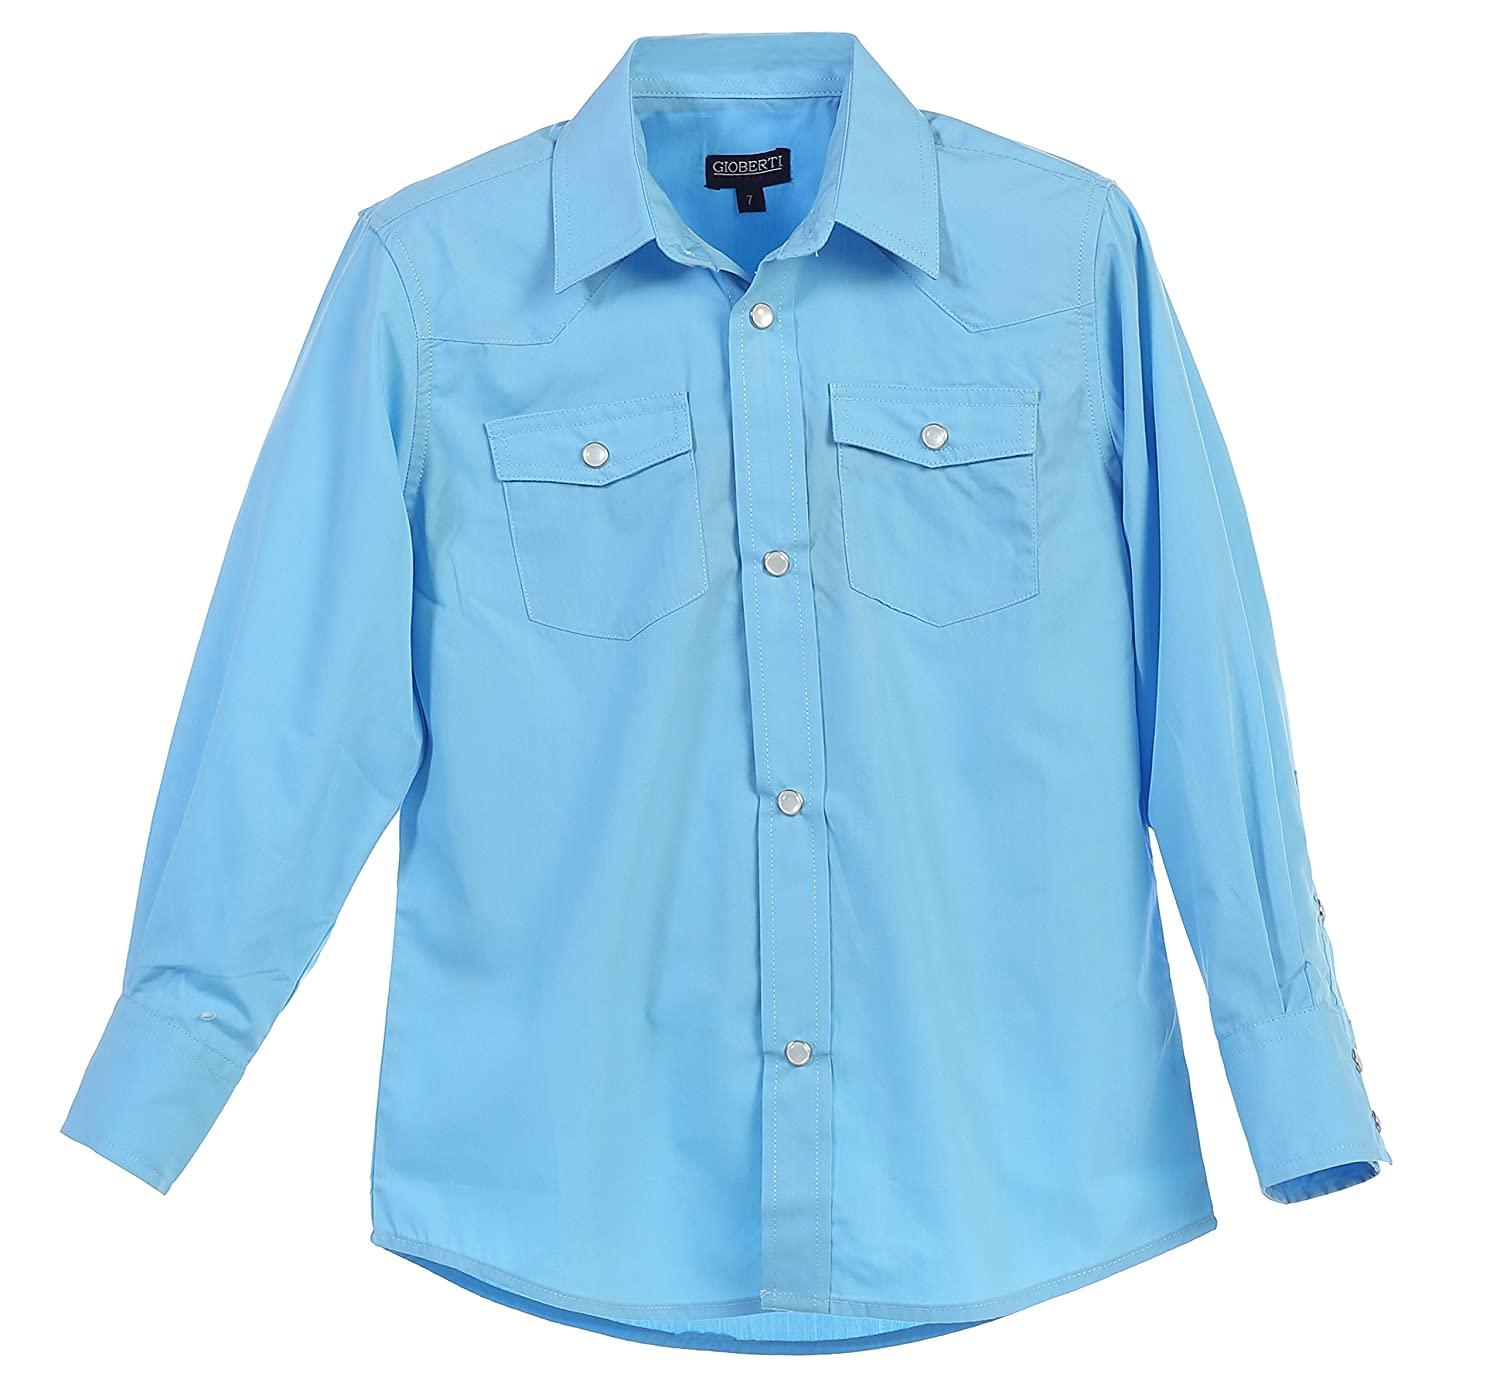 Gioberti Boys Casual Western Solid Long Sleeve Shirt with Pearl Snaps LS-85W